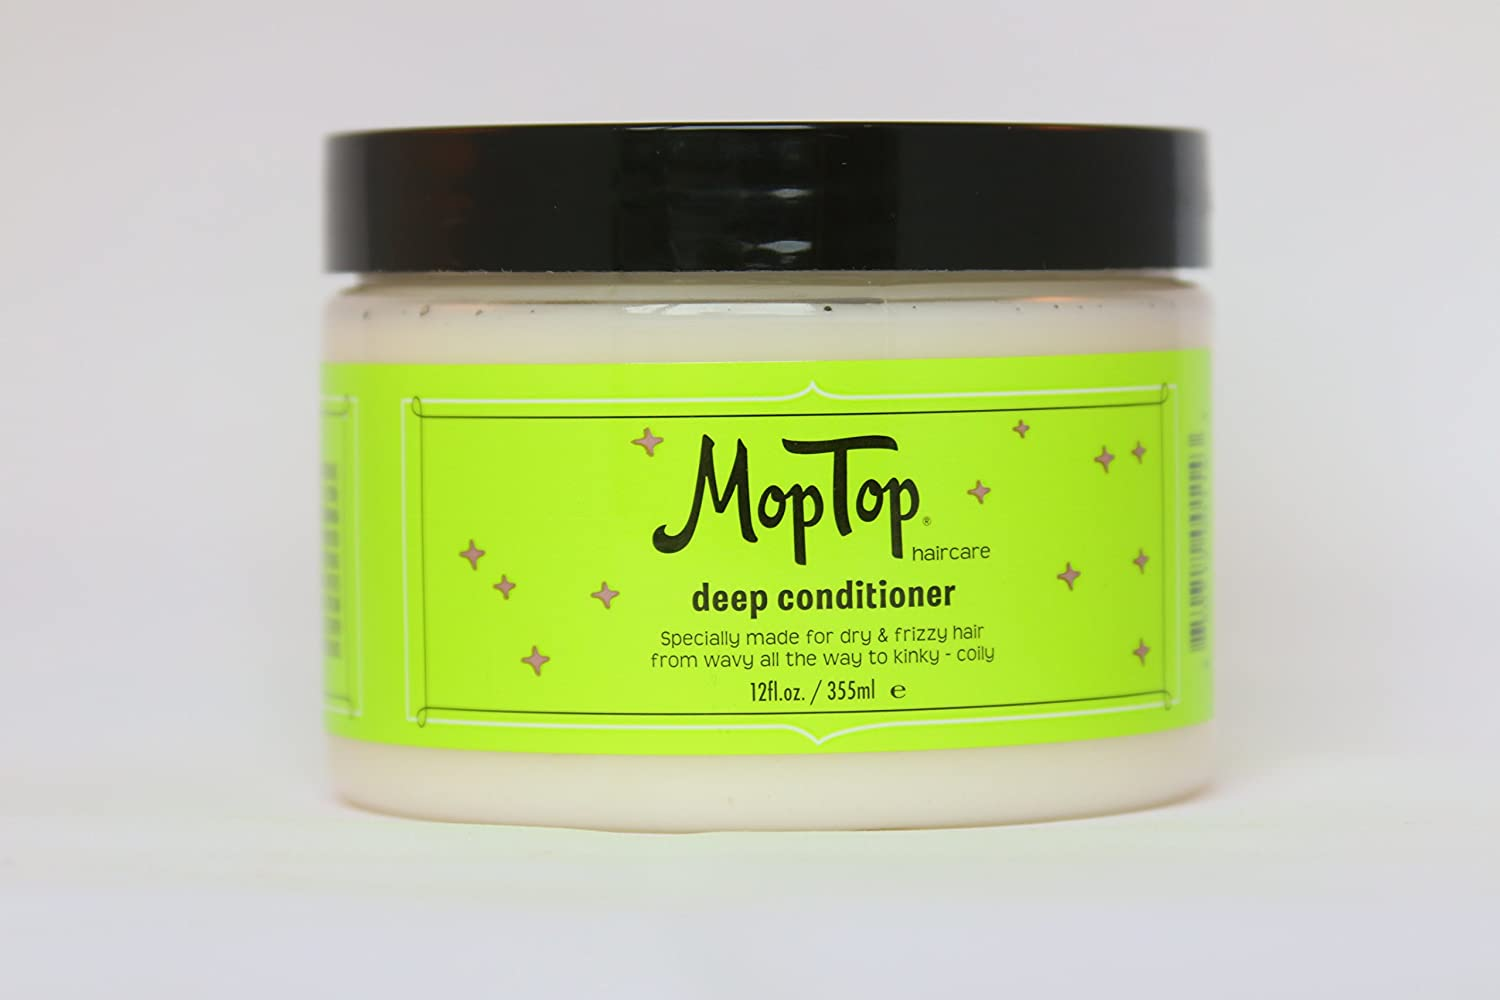 12oz Deep Conditioner, Wavy, Curly & Kinky-Coily, Color or Chemically Treated & Natural Hair Moisturizing Mask, made w/ Aloe, Sea Botanicals & Honey that reduces Frizz, increases Moisture & Manageability for S